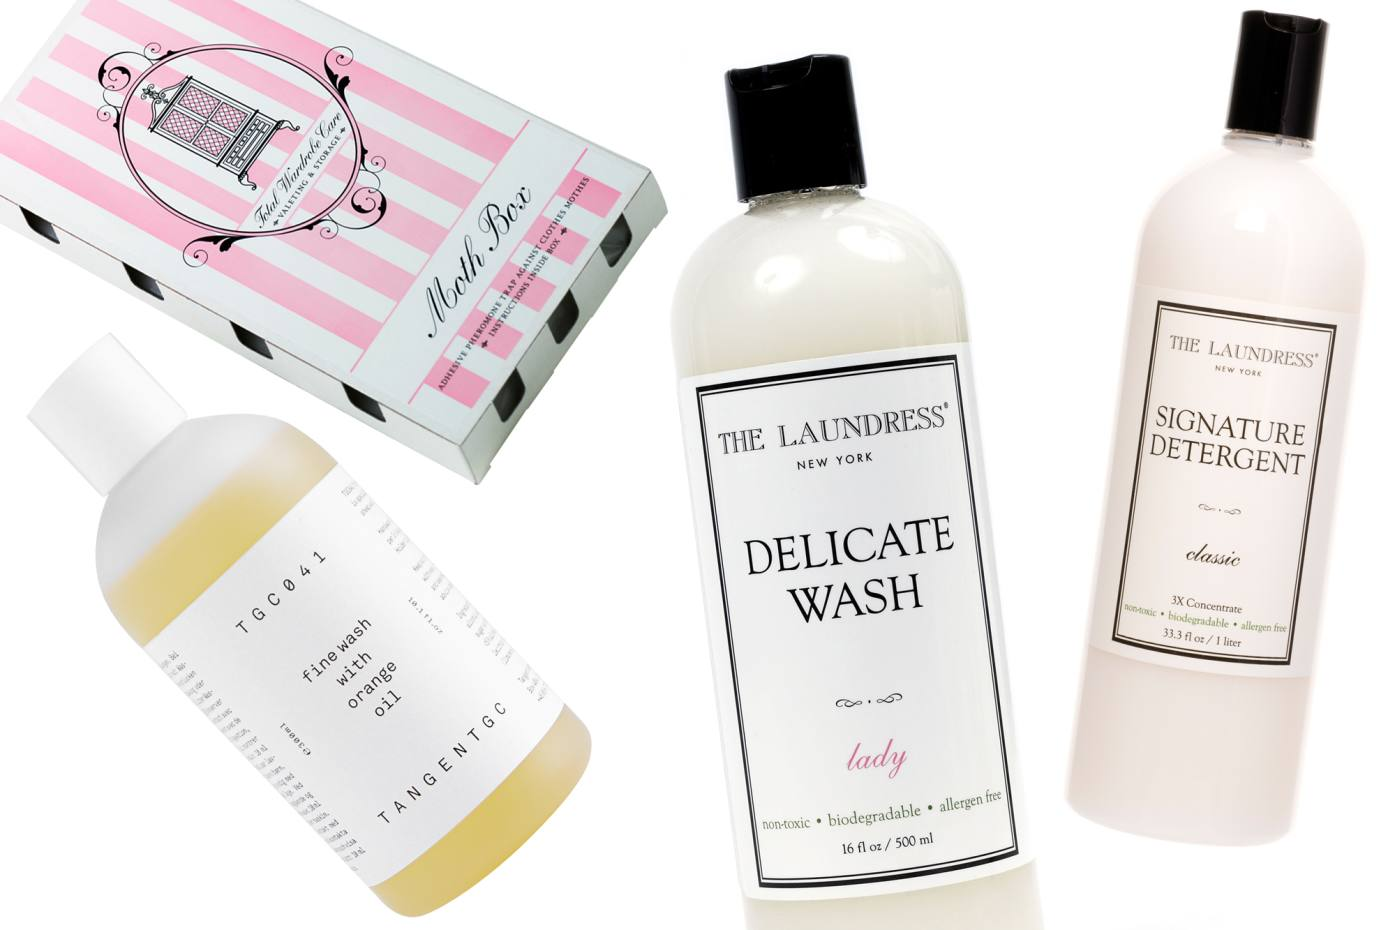 Clockwise from far right: The Laundress Signature Detergent, £15.50. The Laundress Delicate Wash, £14.50. Tangent Garment Care orange oil-infused fine wash for delicates, €13. Total Wardrobe Care Moth Box, £7.90